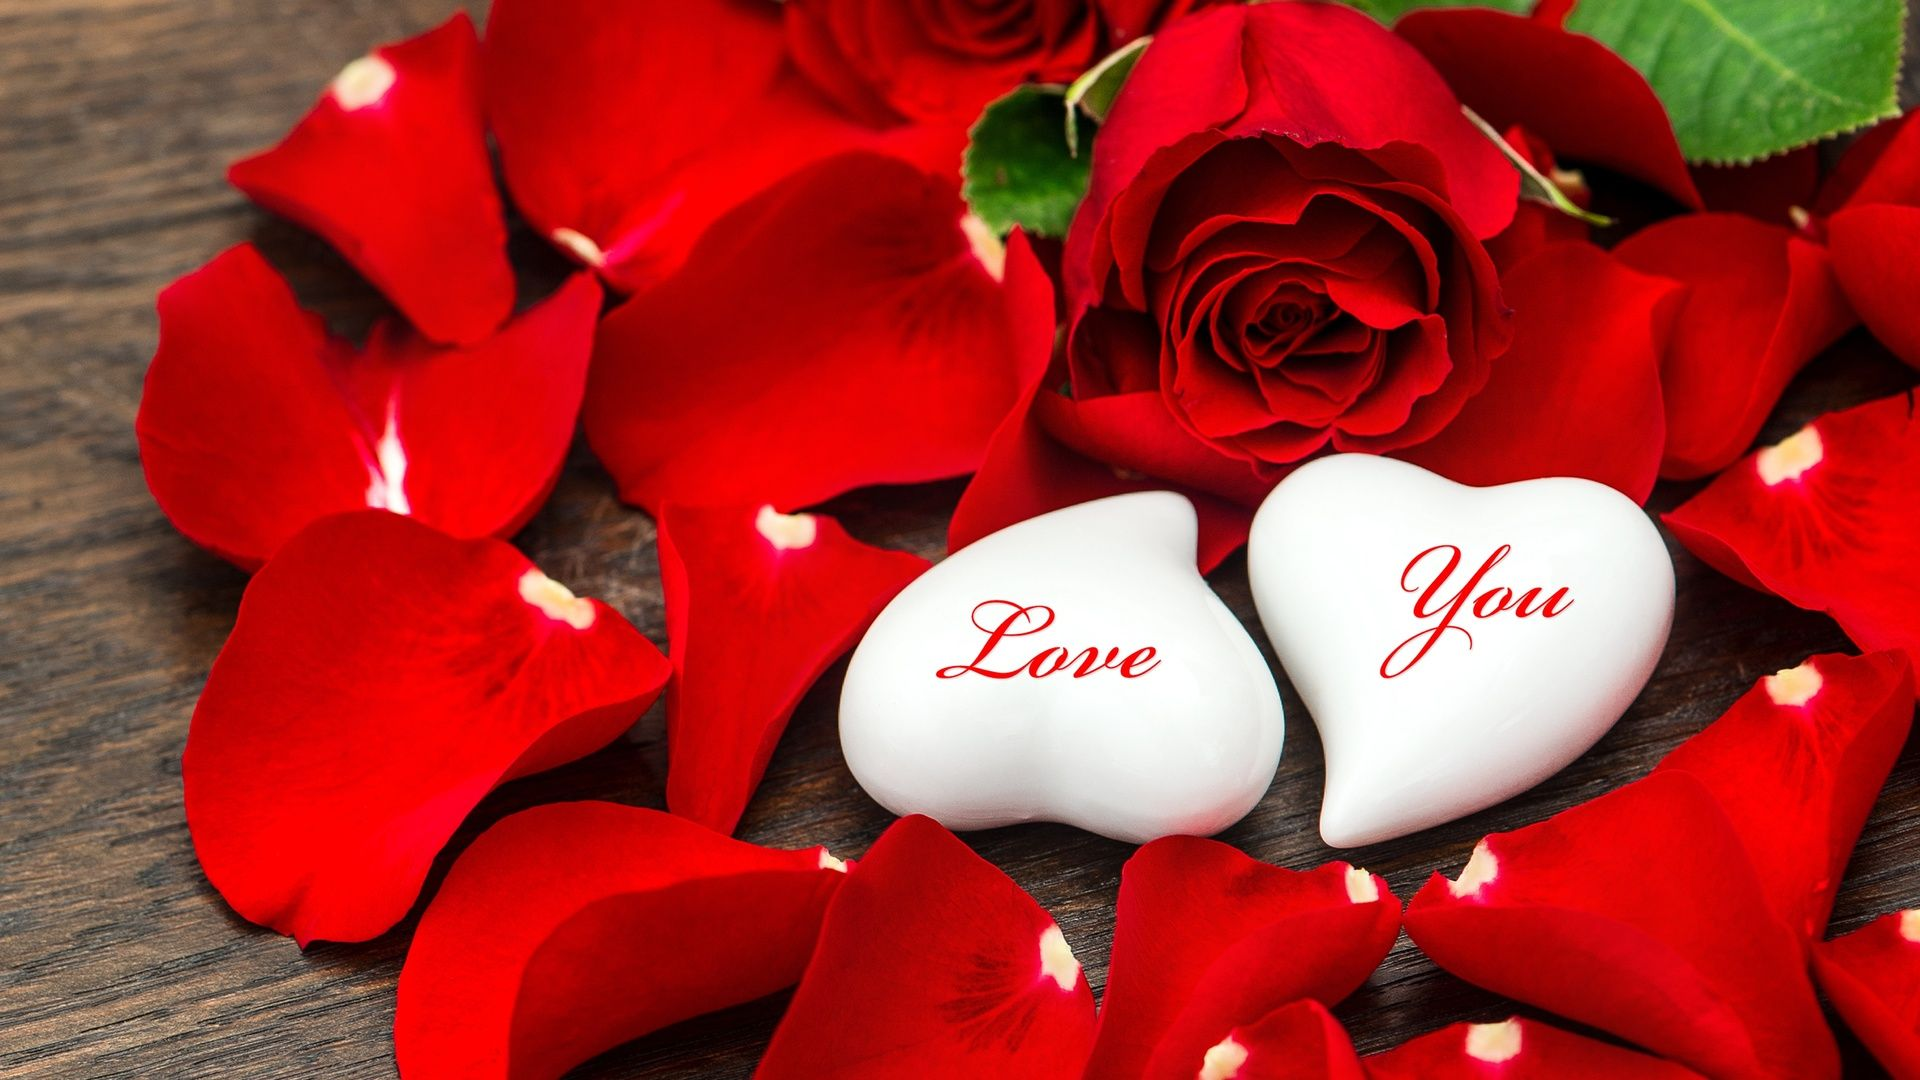 Image Of Love wallpaper background